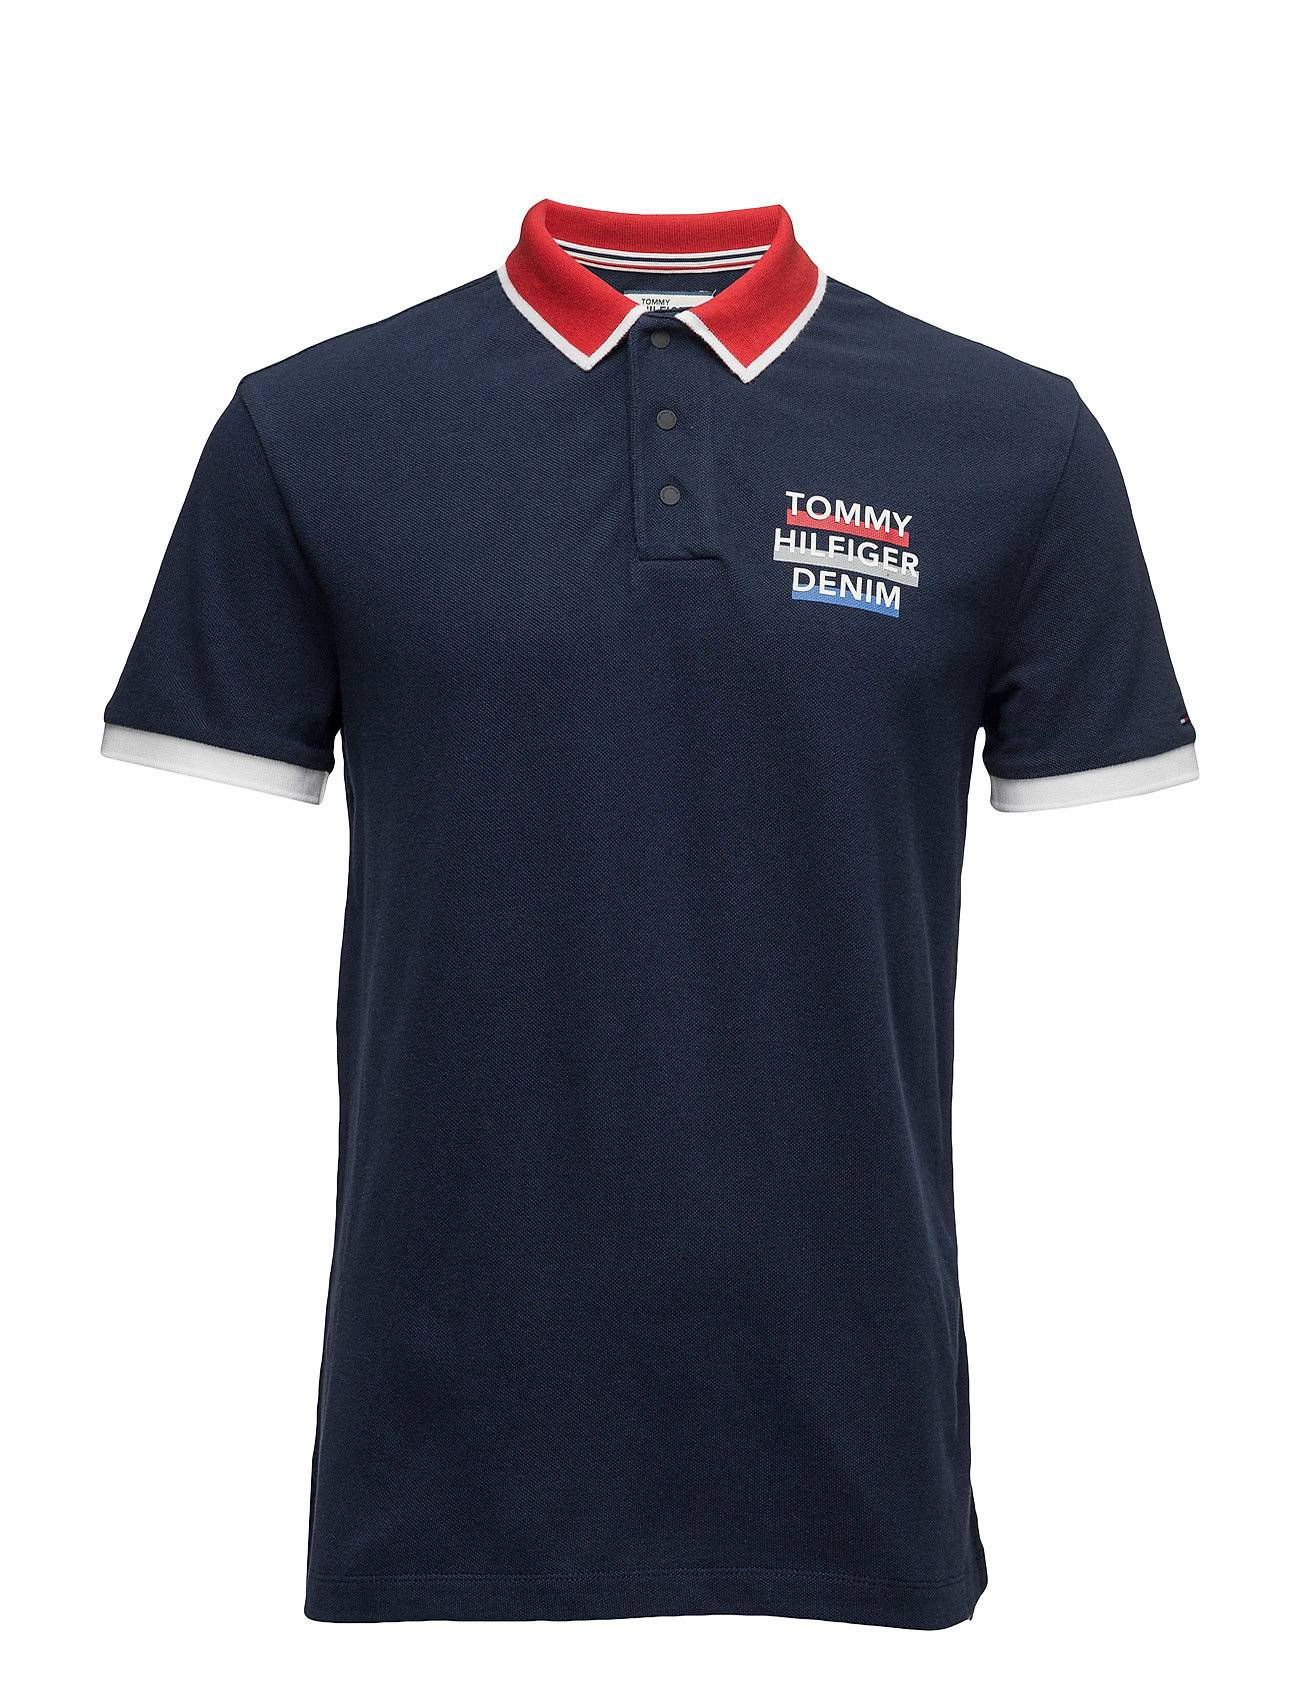 Tommy Jeans Thdm Basic Rlx Bdg Polo S/S 15